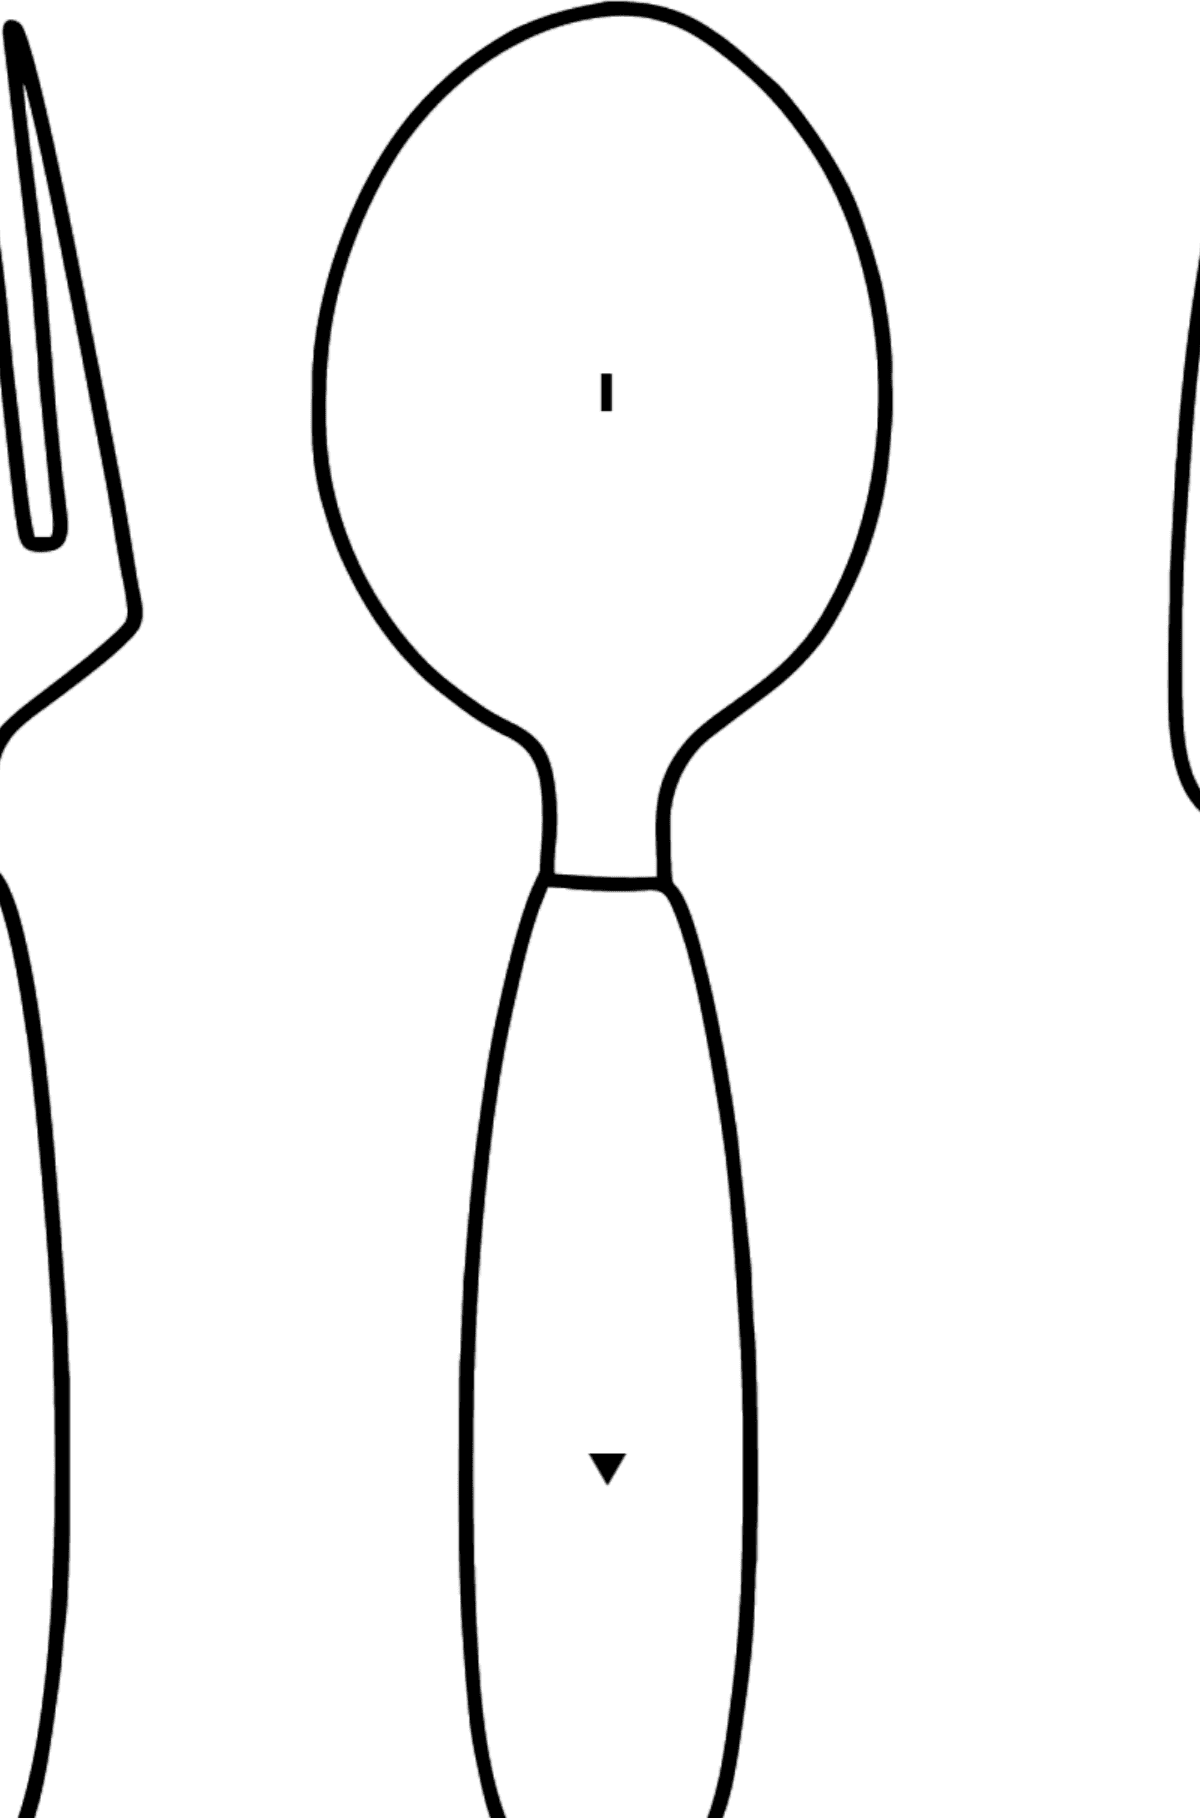 Cutlery coloring page - Coloring by Symbols for Kids